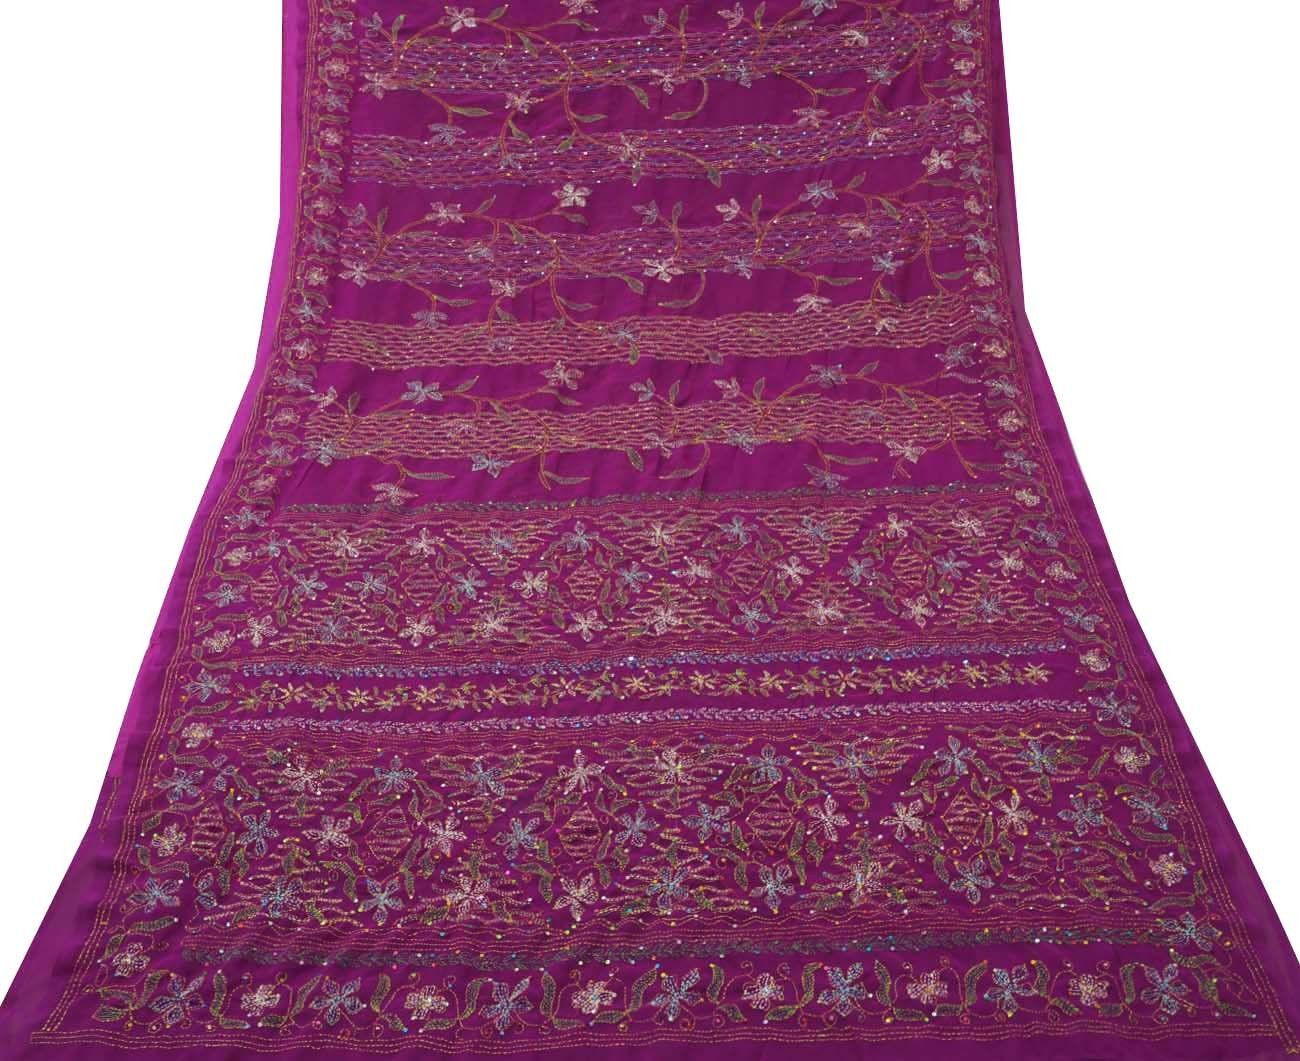 INDIAN VINTAGE CRAFT SAREE KANTHA EMBROIDERED FABRIC DÉCOR SARONG PURPLE SARI